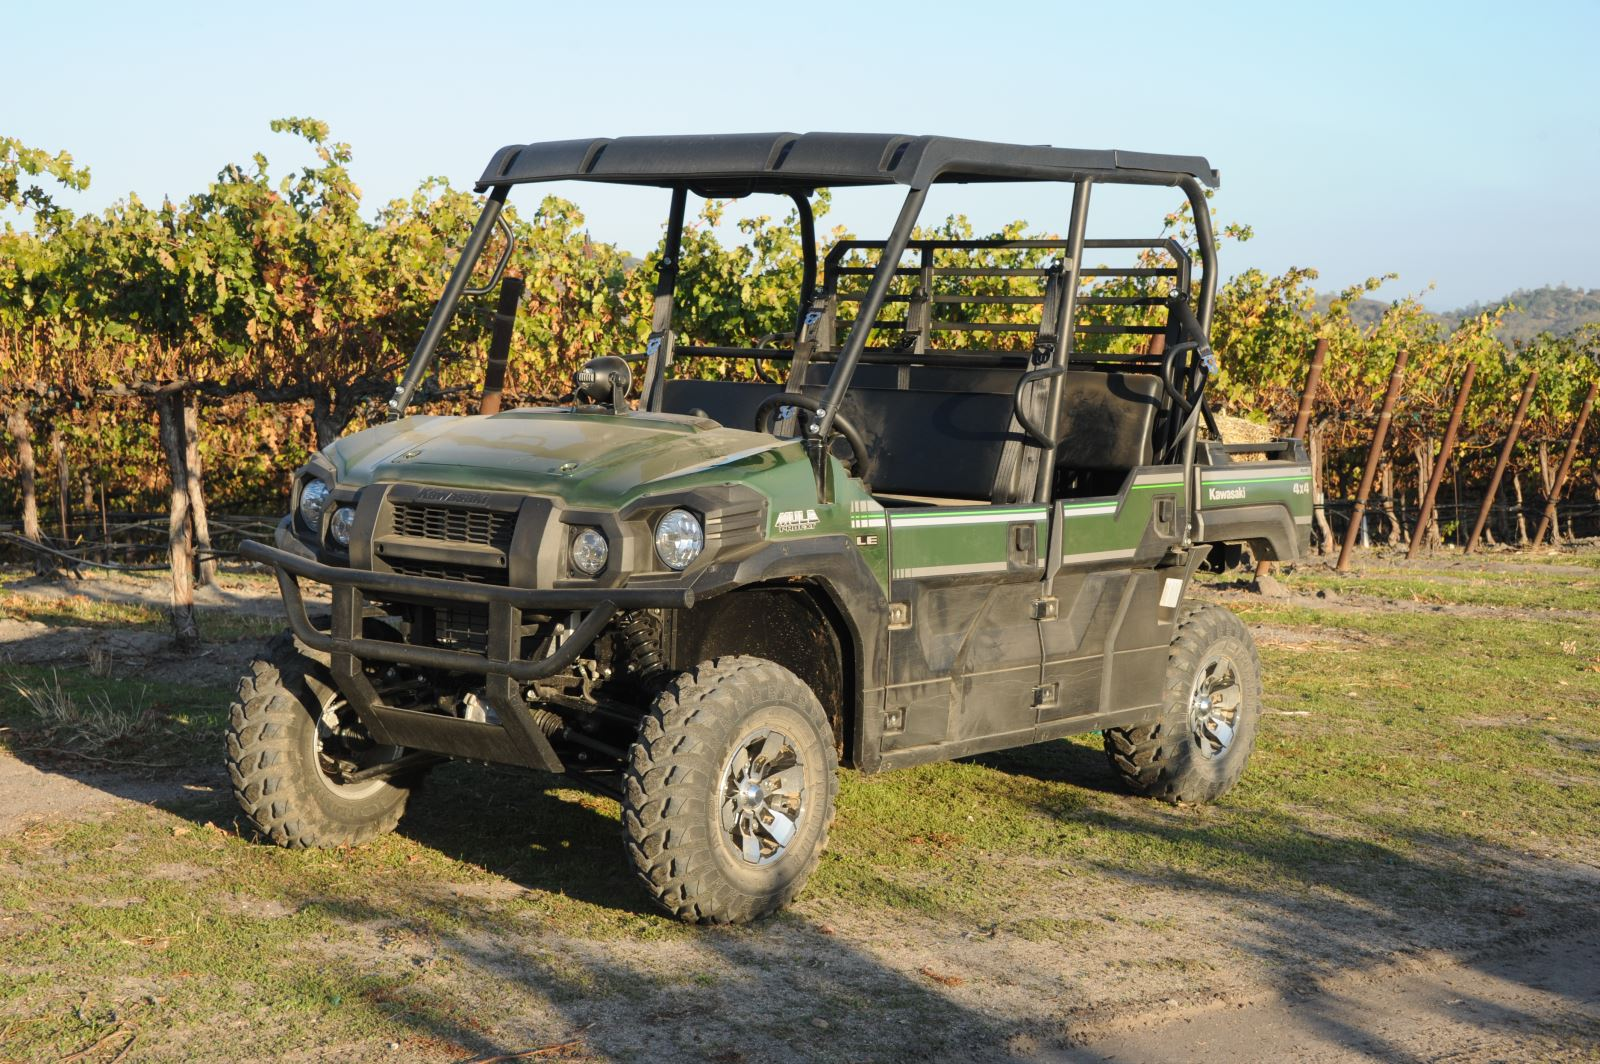 kawasaki mule pro-fxt: mixing play with work   dirt toys magazine